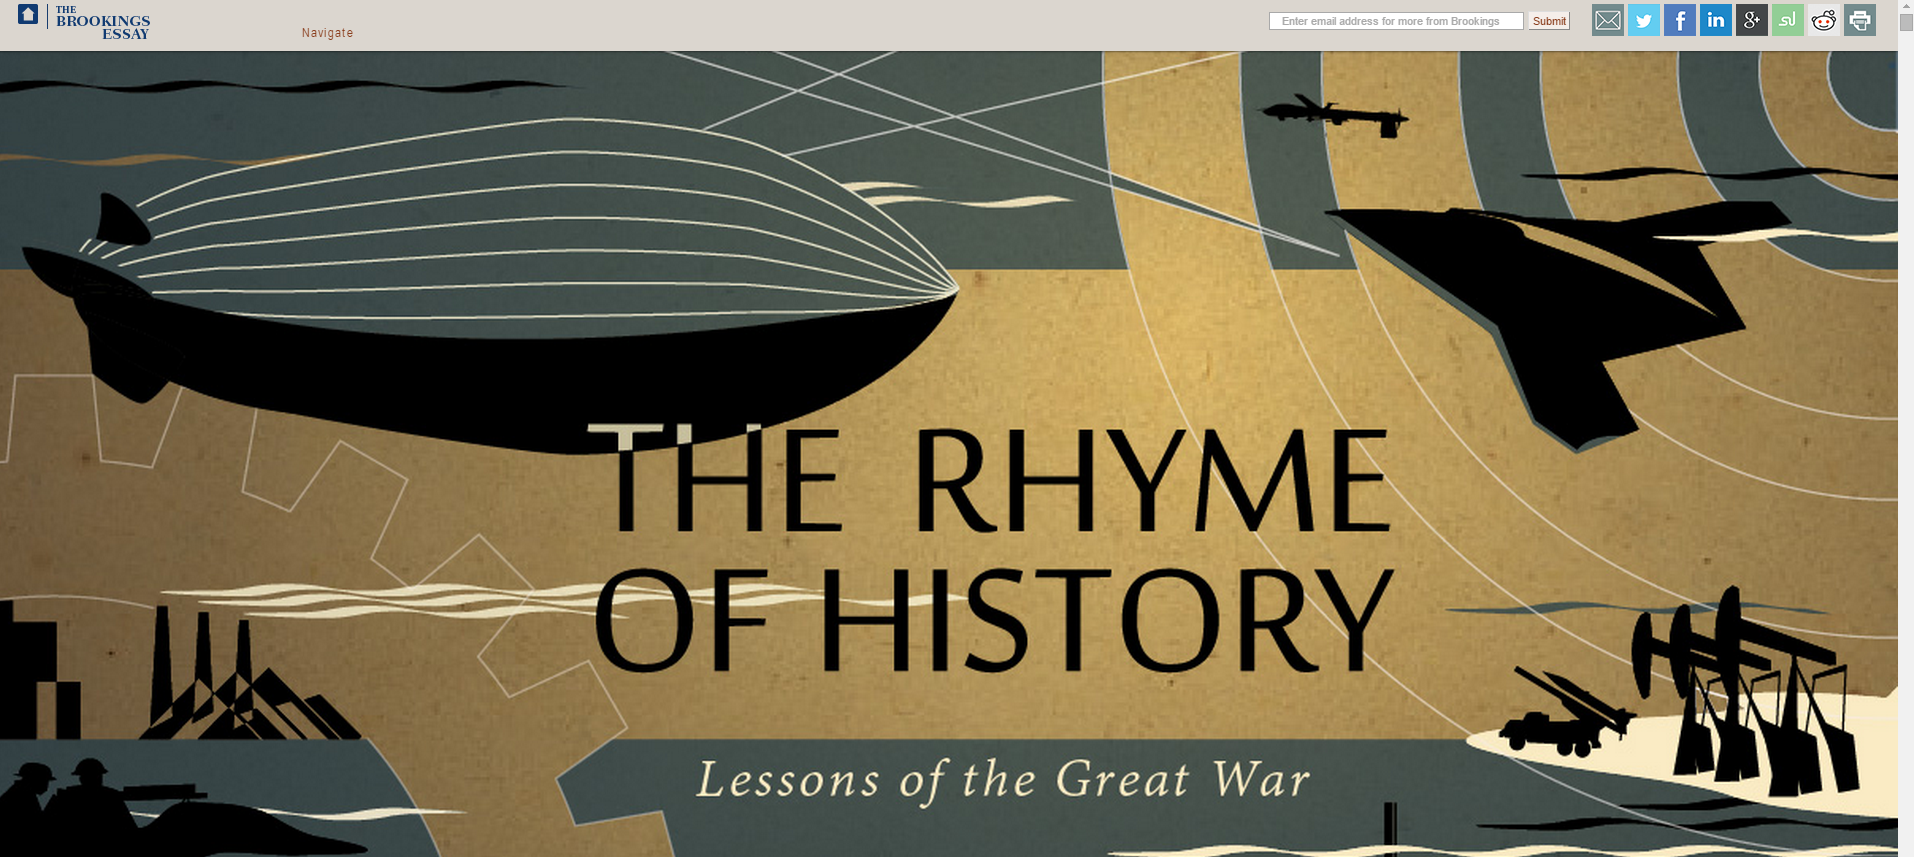 The Rhyme of History: Lessons from the Great War